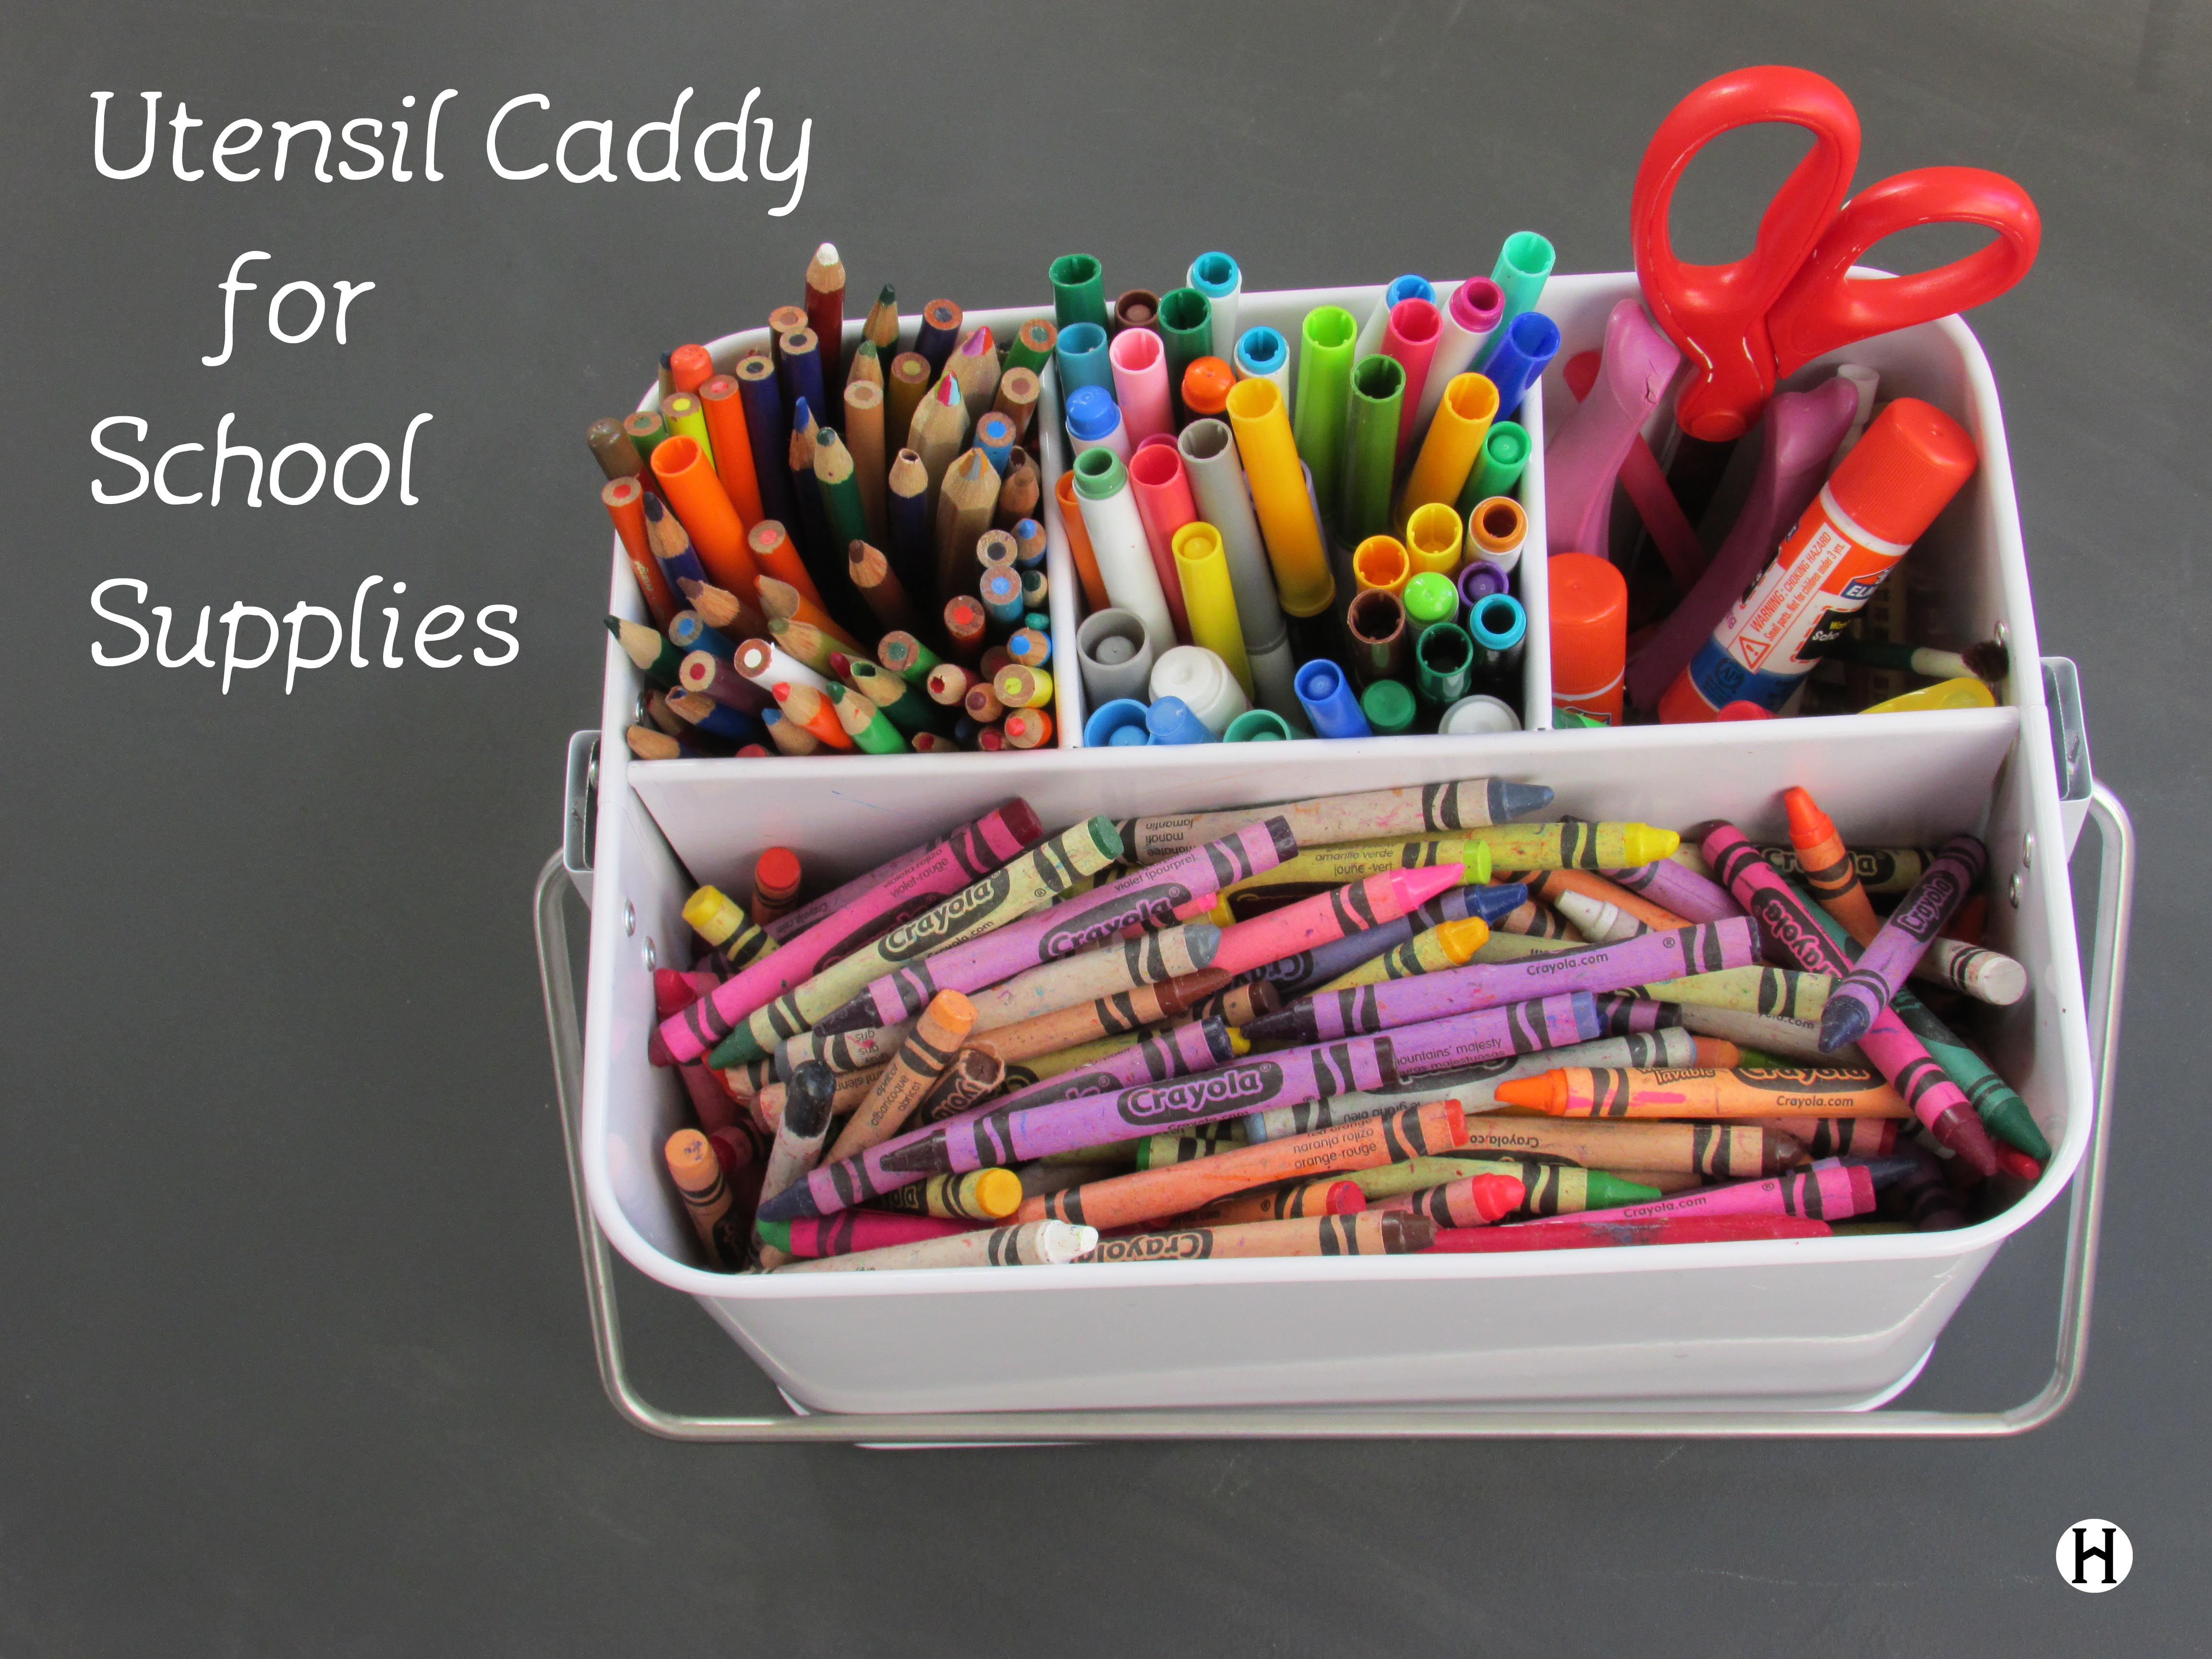 Super Simple Tip Utensil Caddy for School Supplies